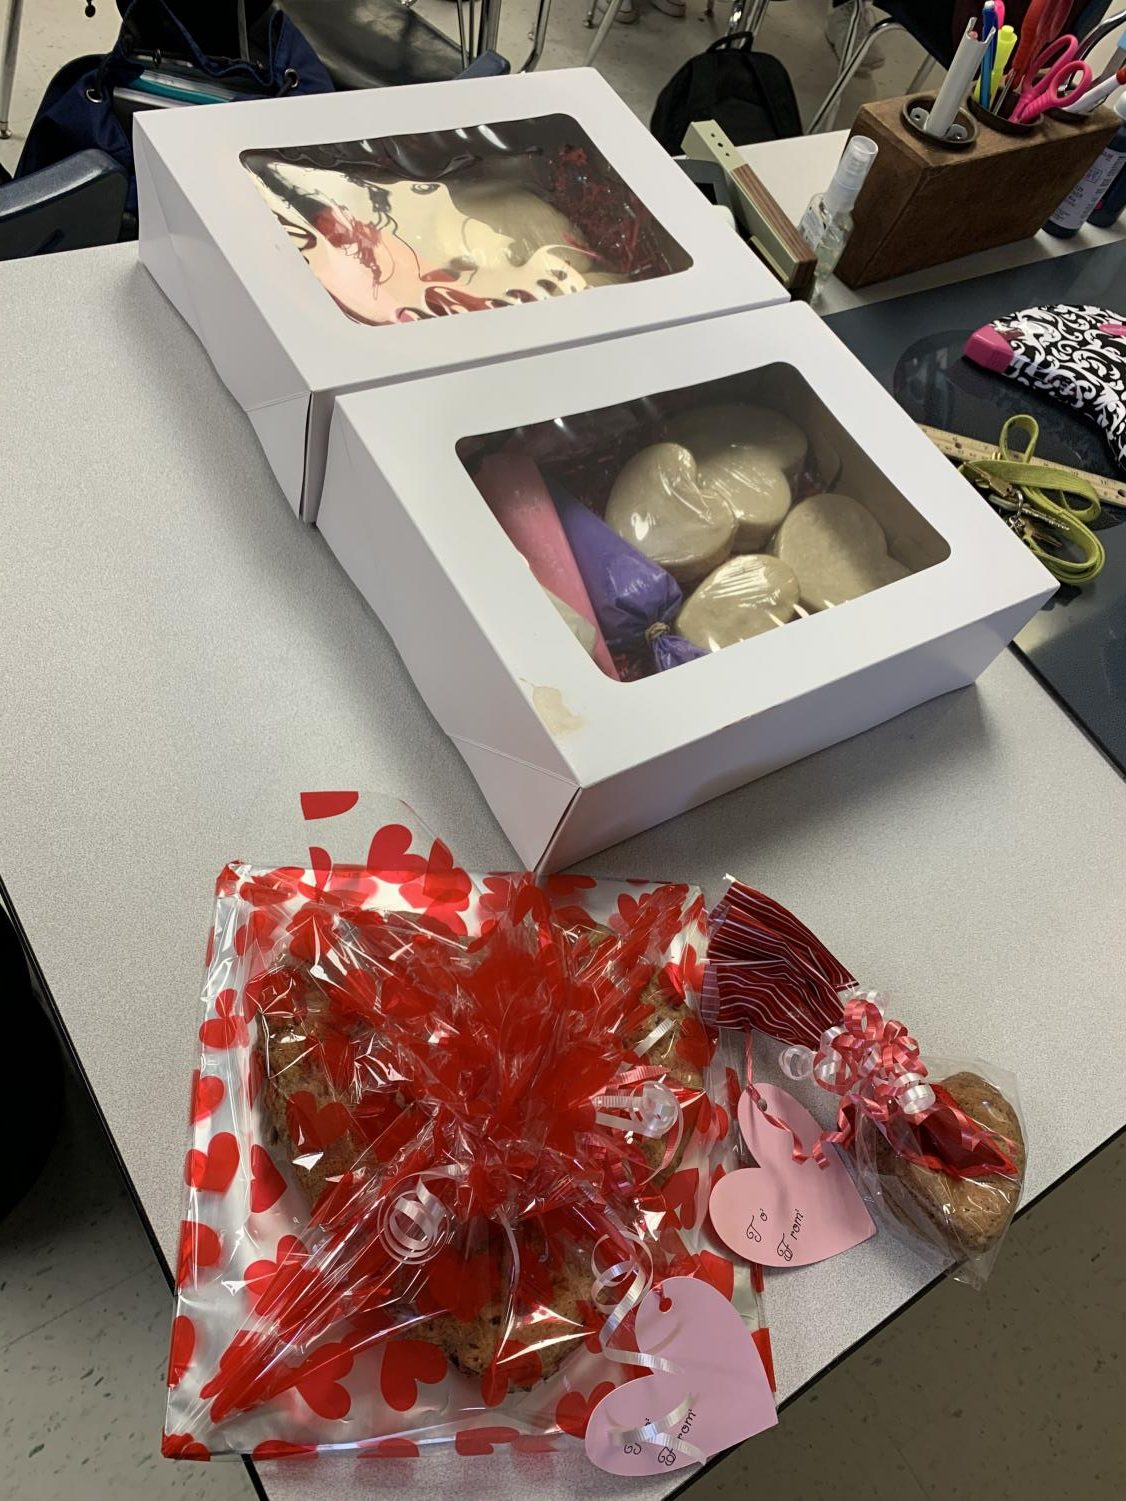 FCCLA is selling cookie decorating kits for Valentine's Day.  This is what it looks like!